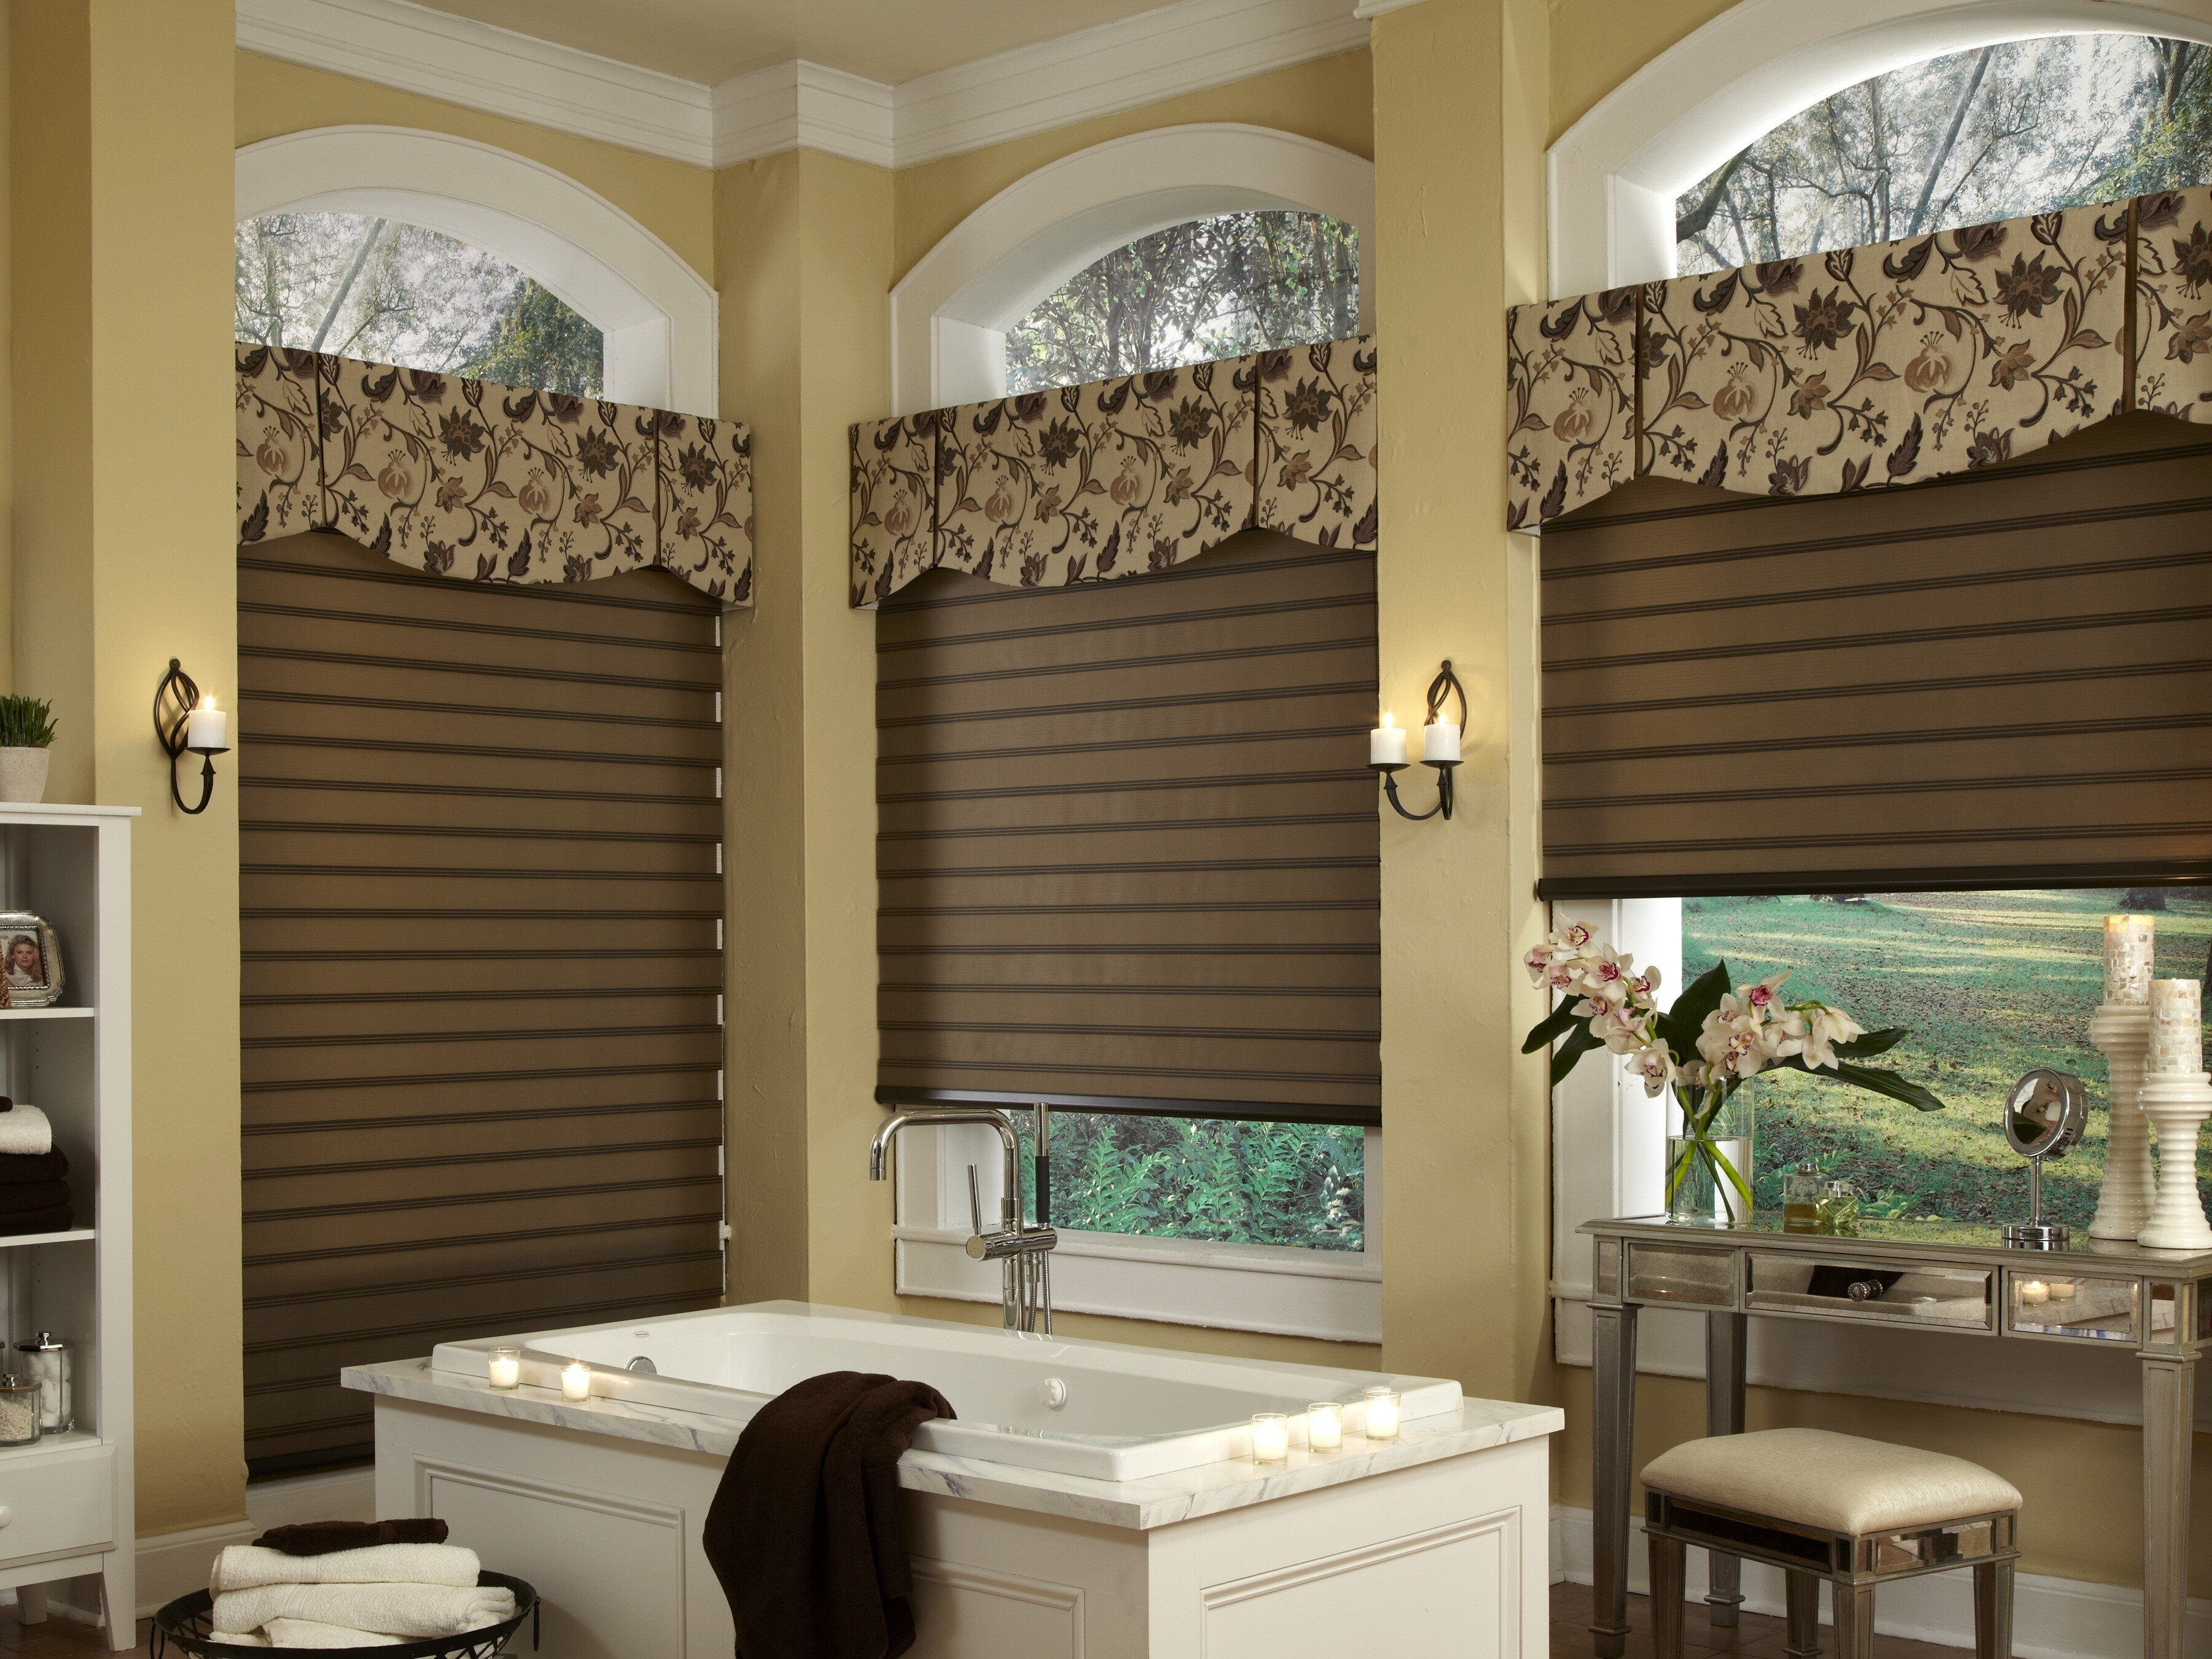 Living Room Valances | Living Room Curtains with Valance | Dining Room Valance